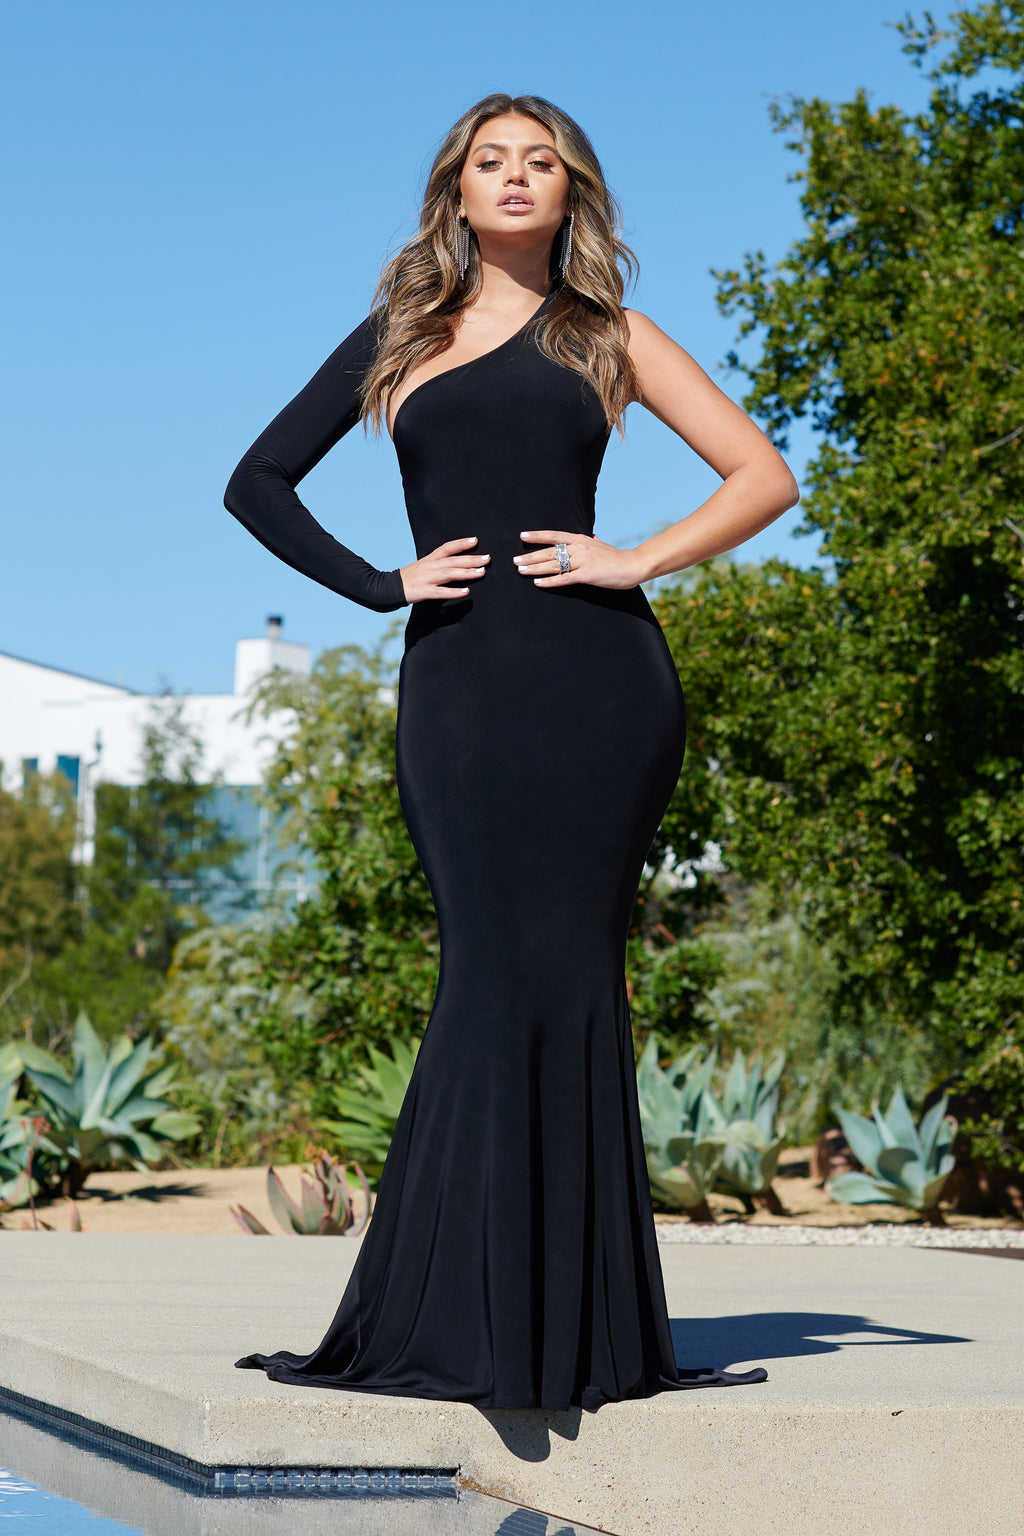 Black One Shoulder Fishtail Maxi Dress - Club L London